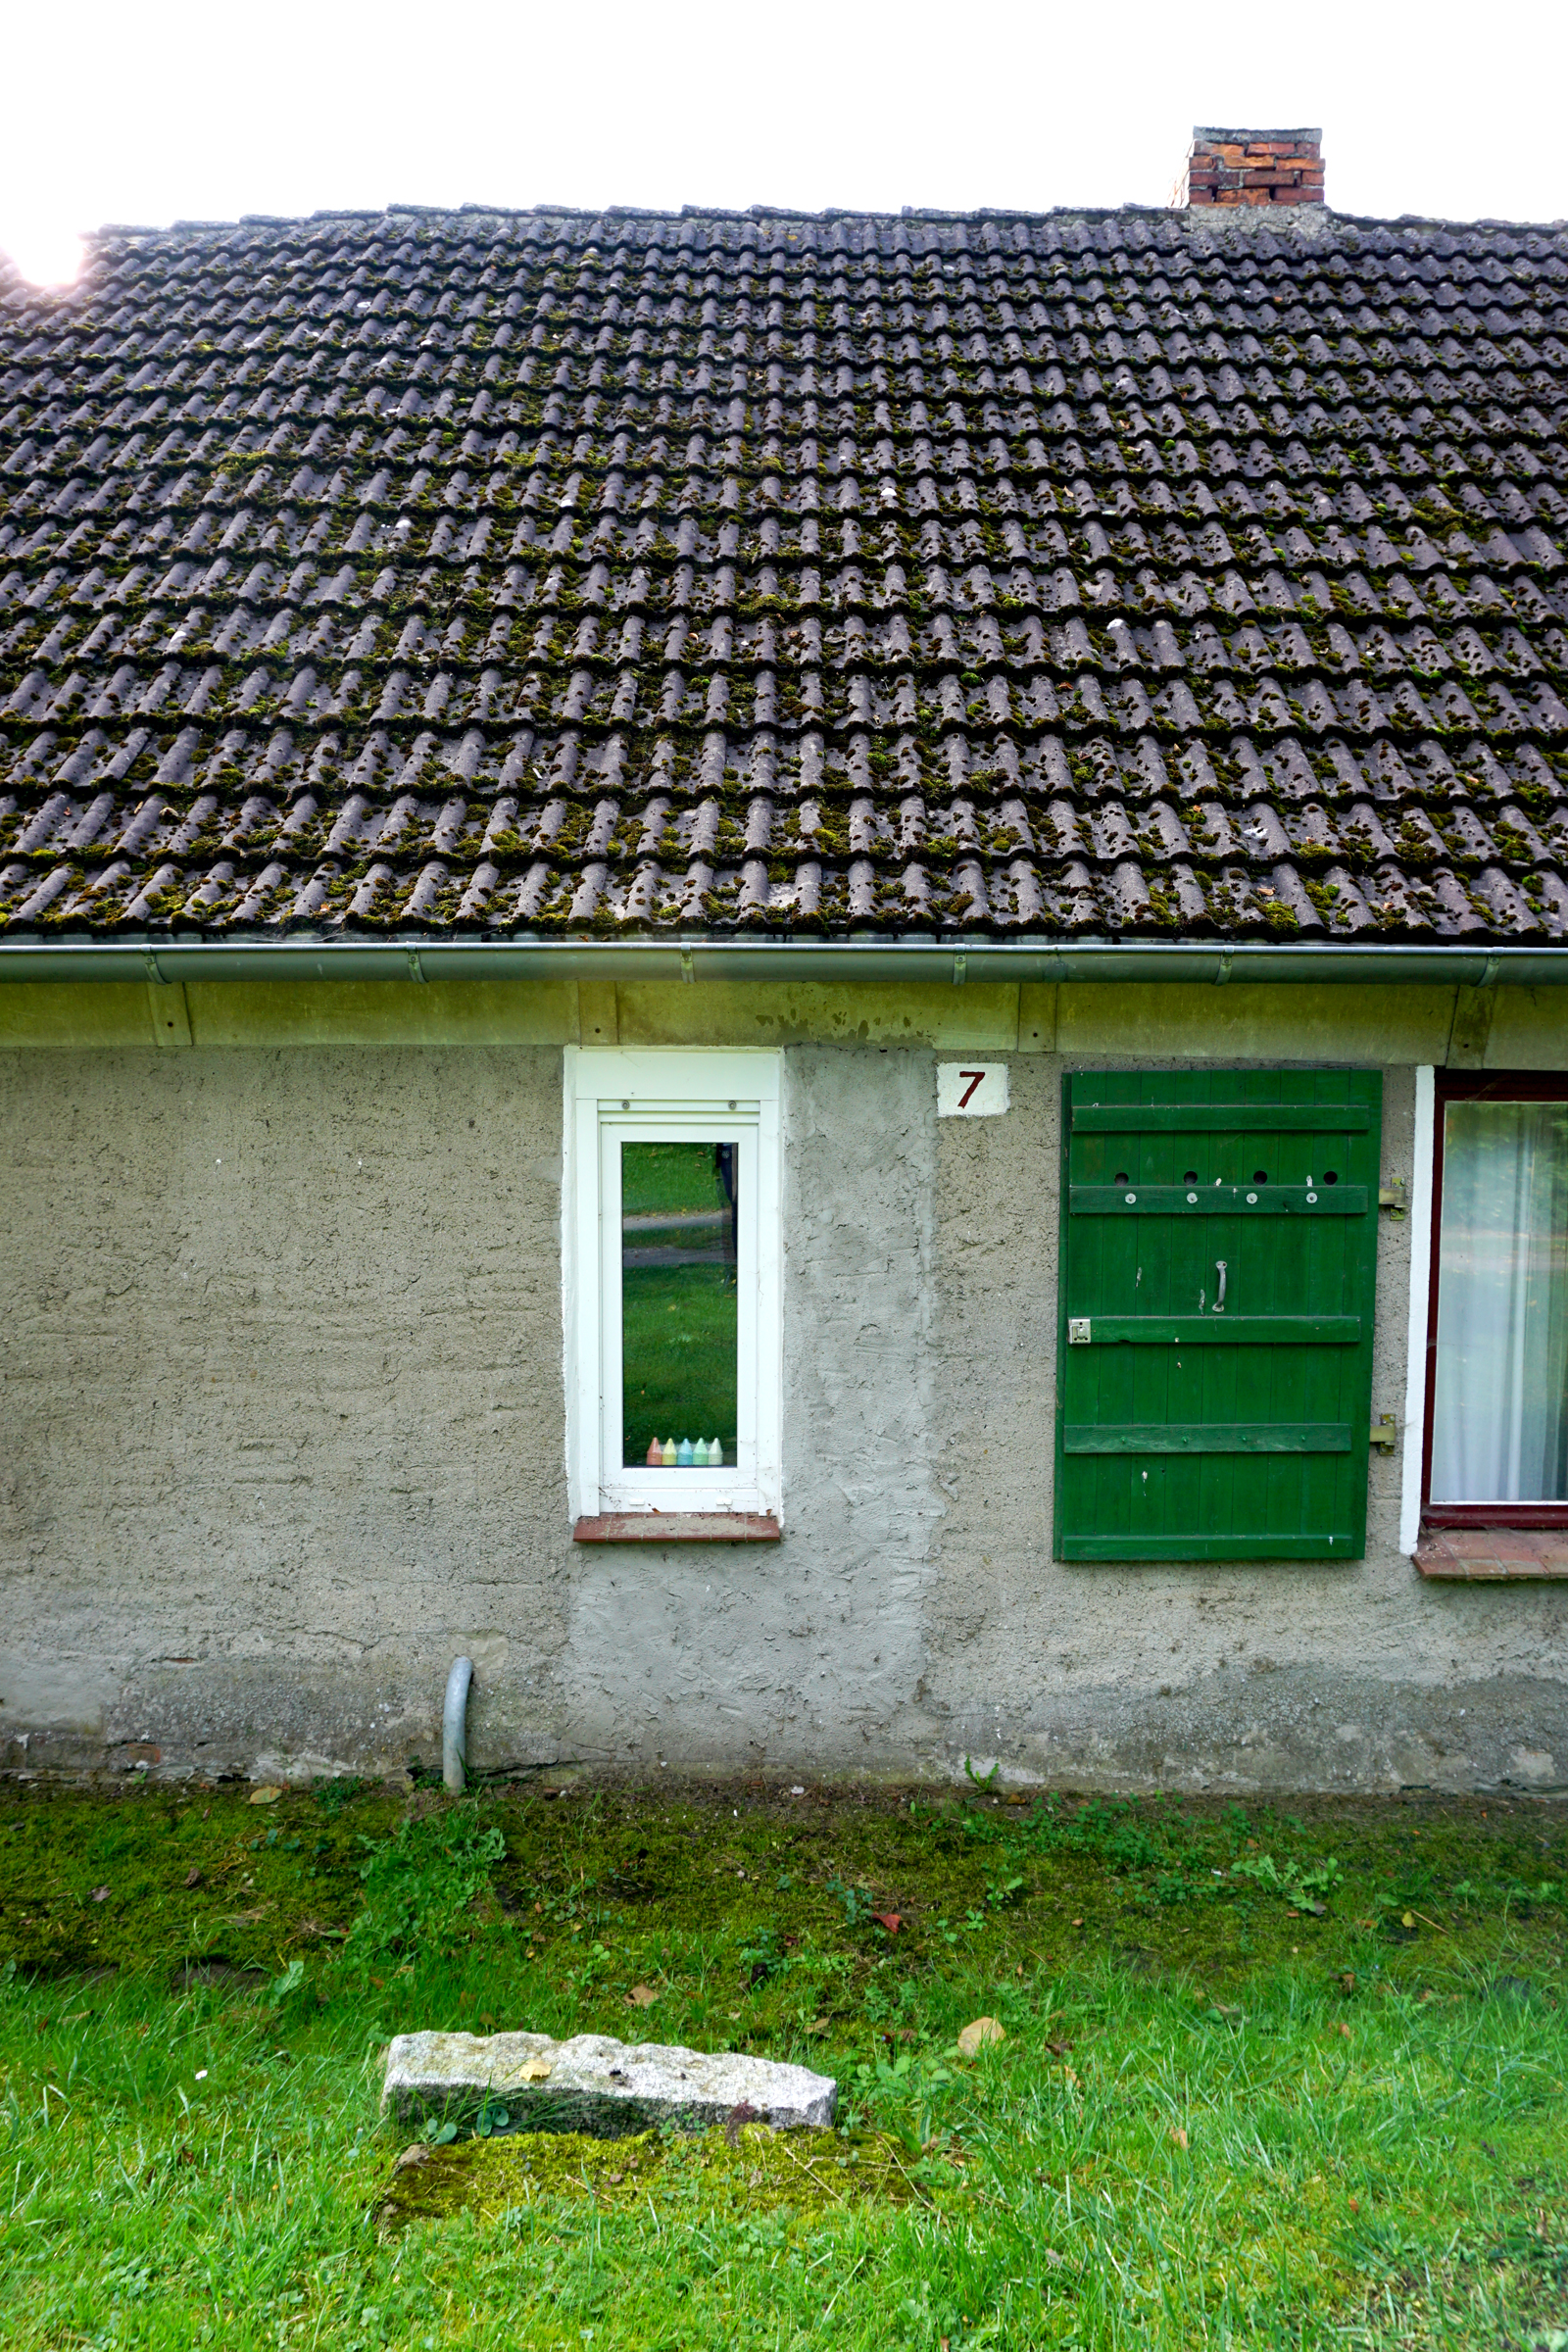 Existing house: isolationism of the GDR (East Germany)